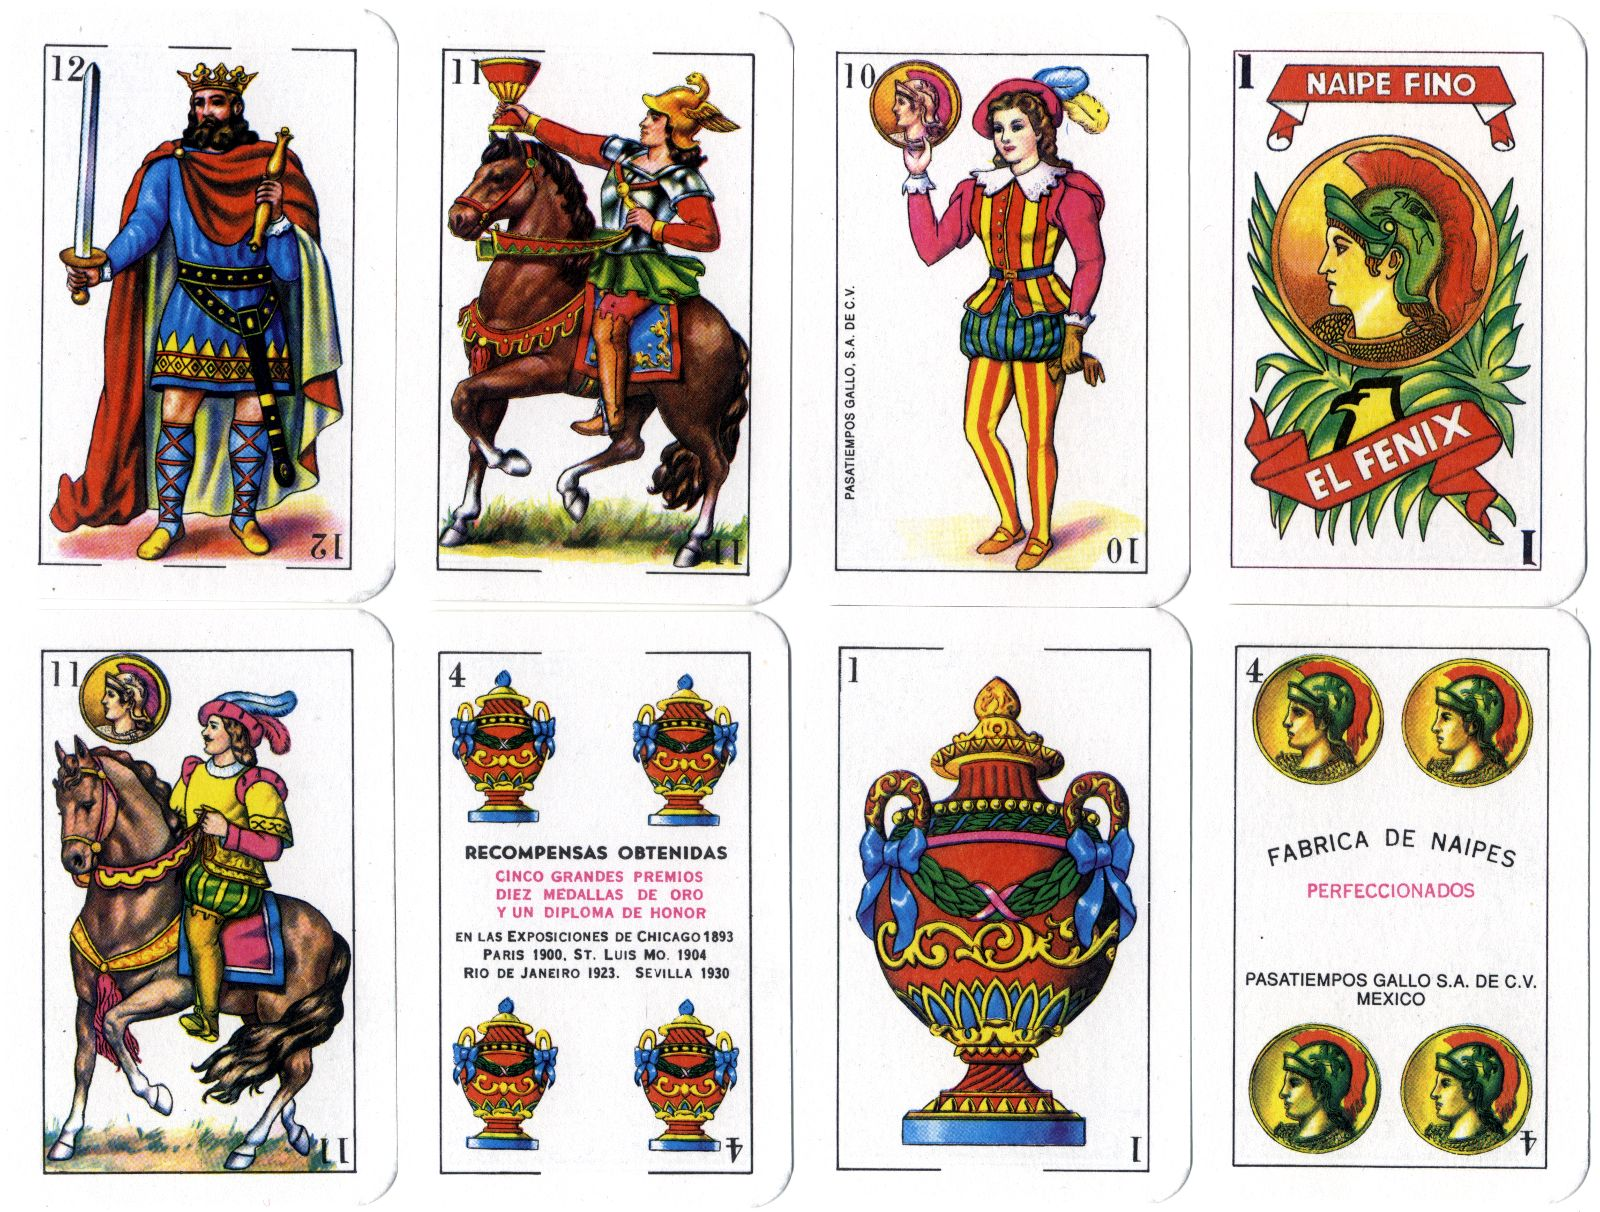 El Fenix playing cards by Pasatiempos Gallo S.A. Mexico c.2000